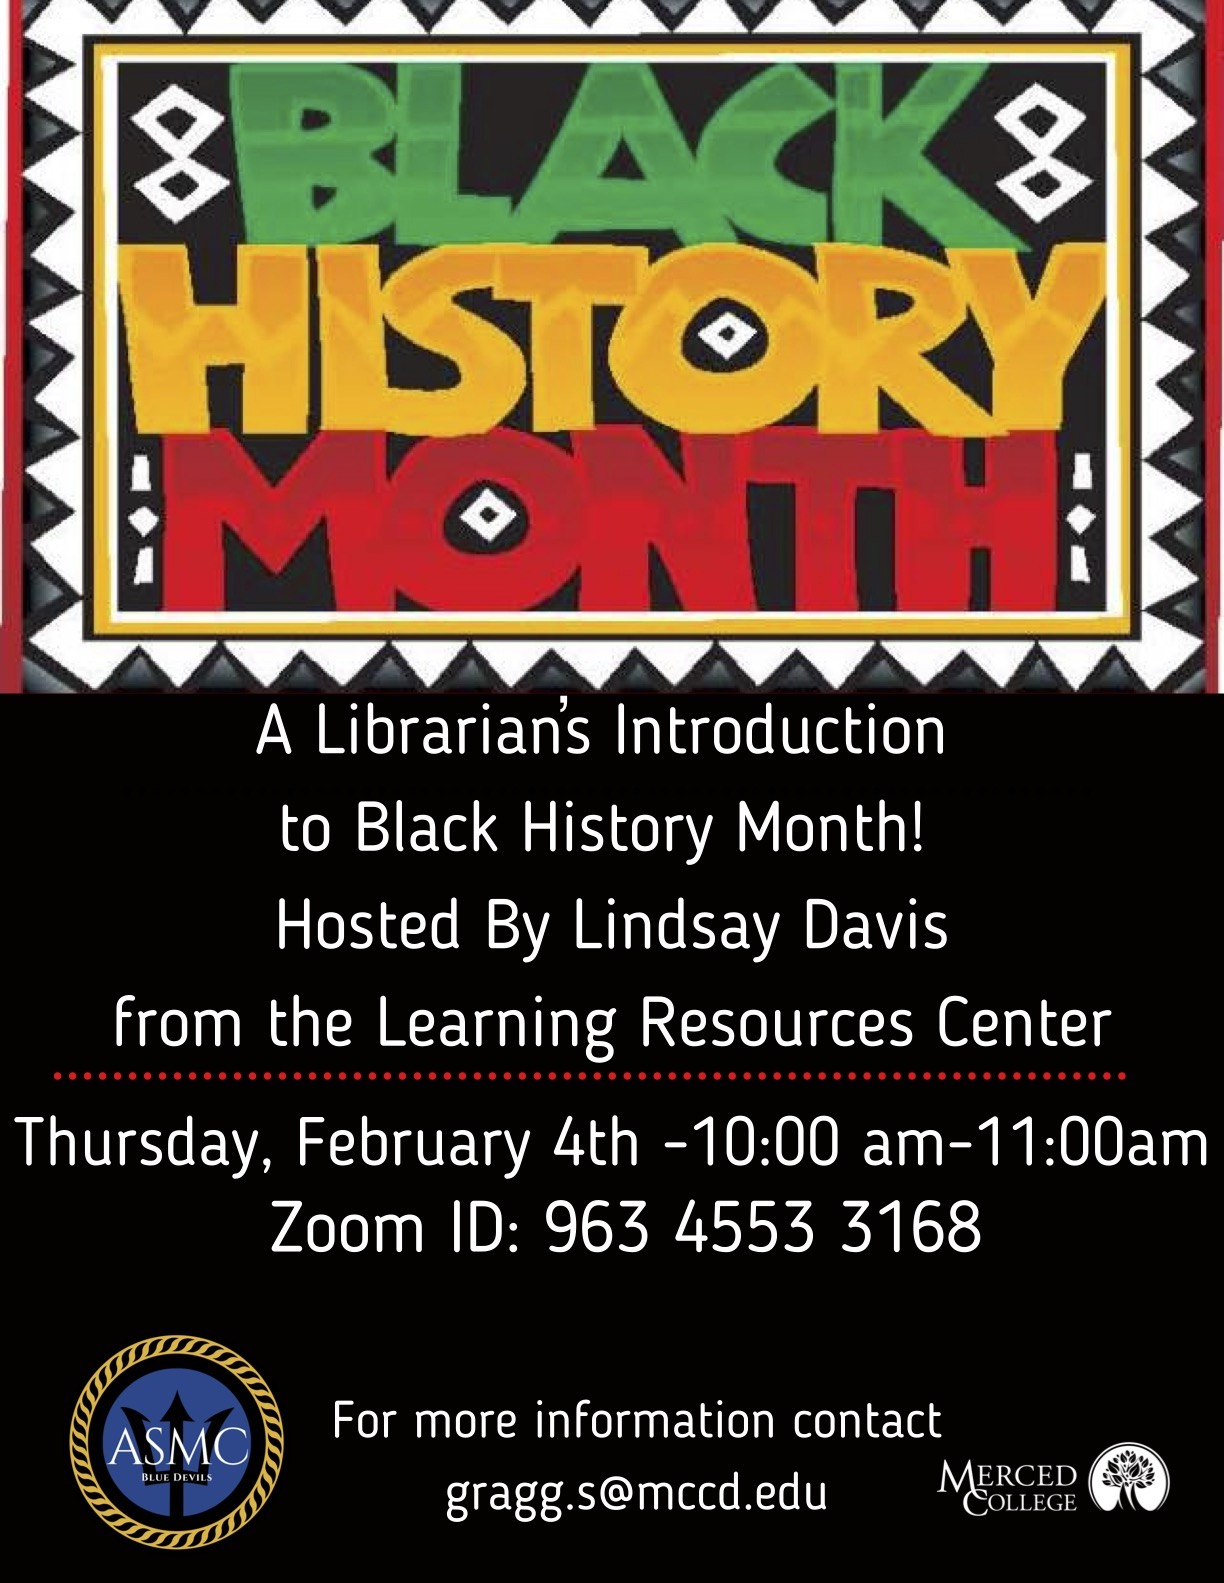 A Librarian's Introduction to Black History Month